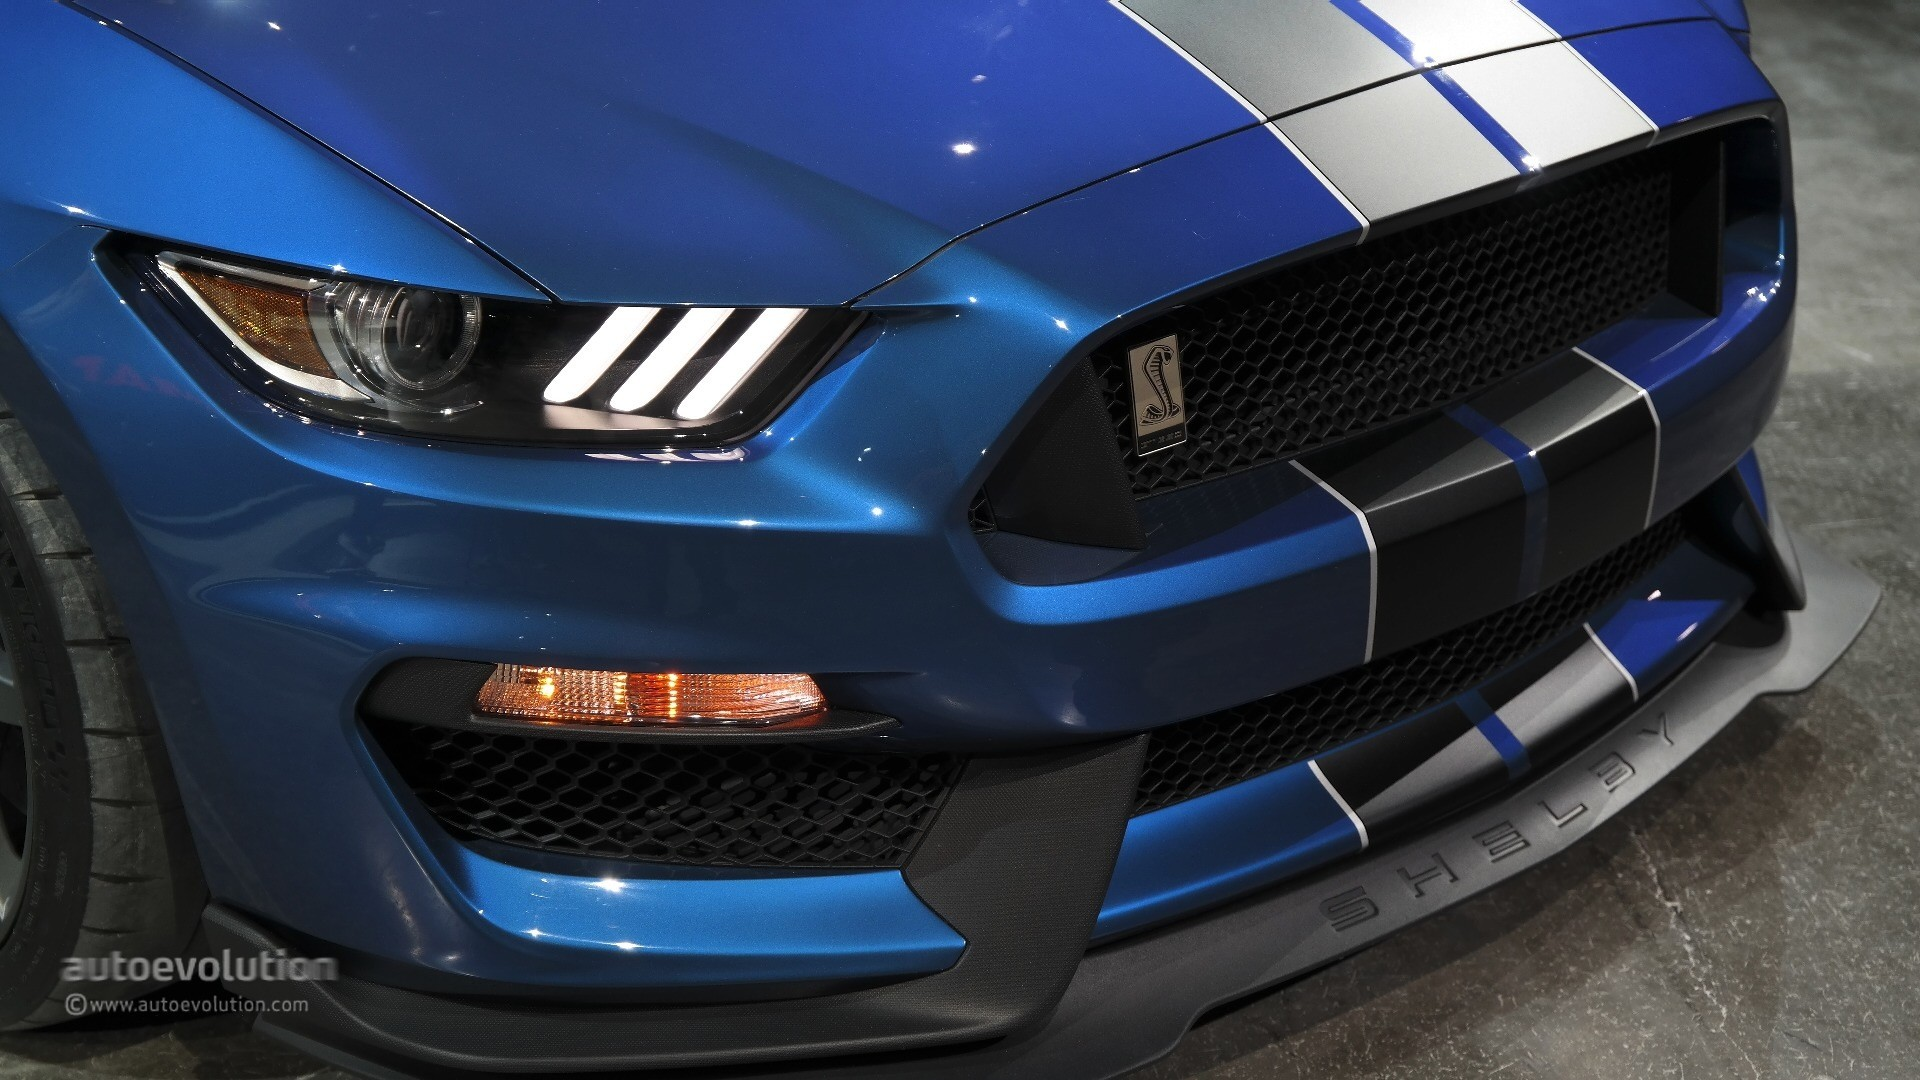 Mustang 2018 Ecoboost >> New Shelby GT350R Mustang Unveiled in Detroit with Burnout and Over 500 HP [Live Photos ...